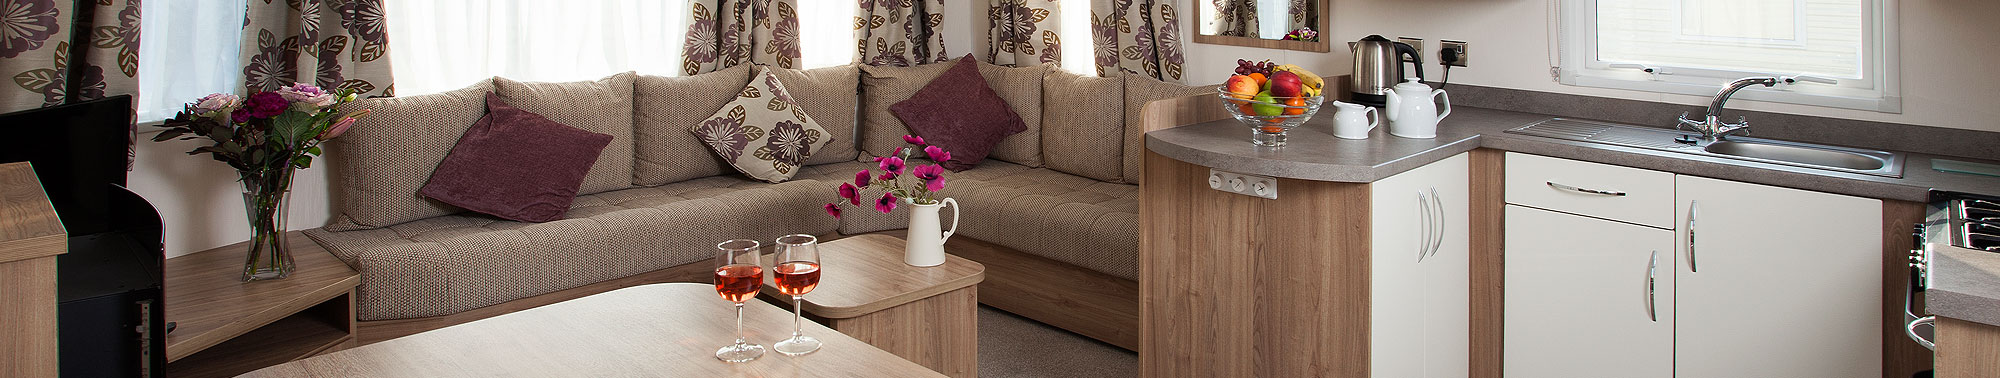 Interior of our Avonmore caravans